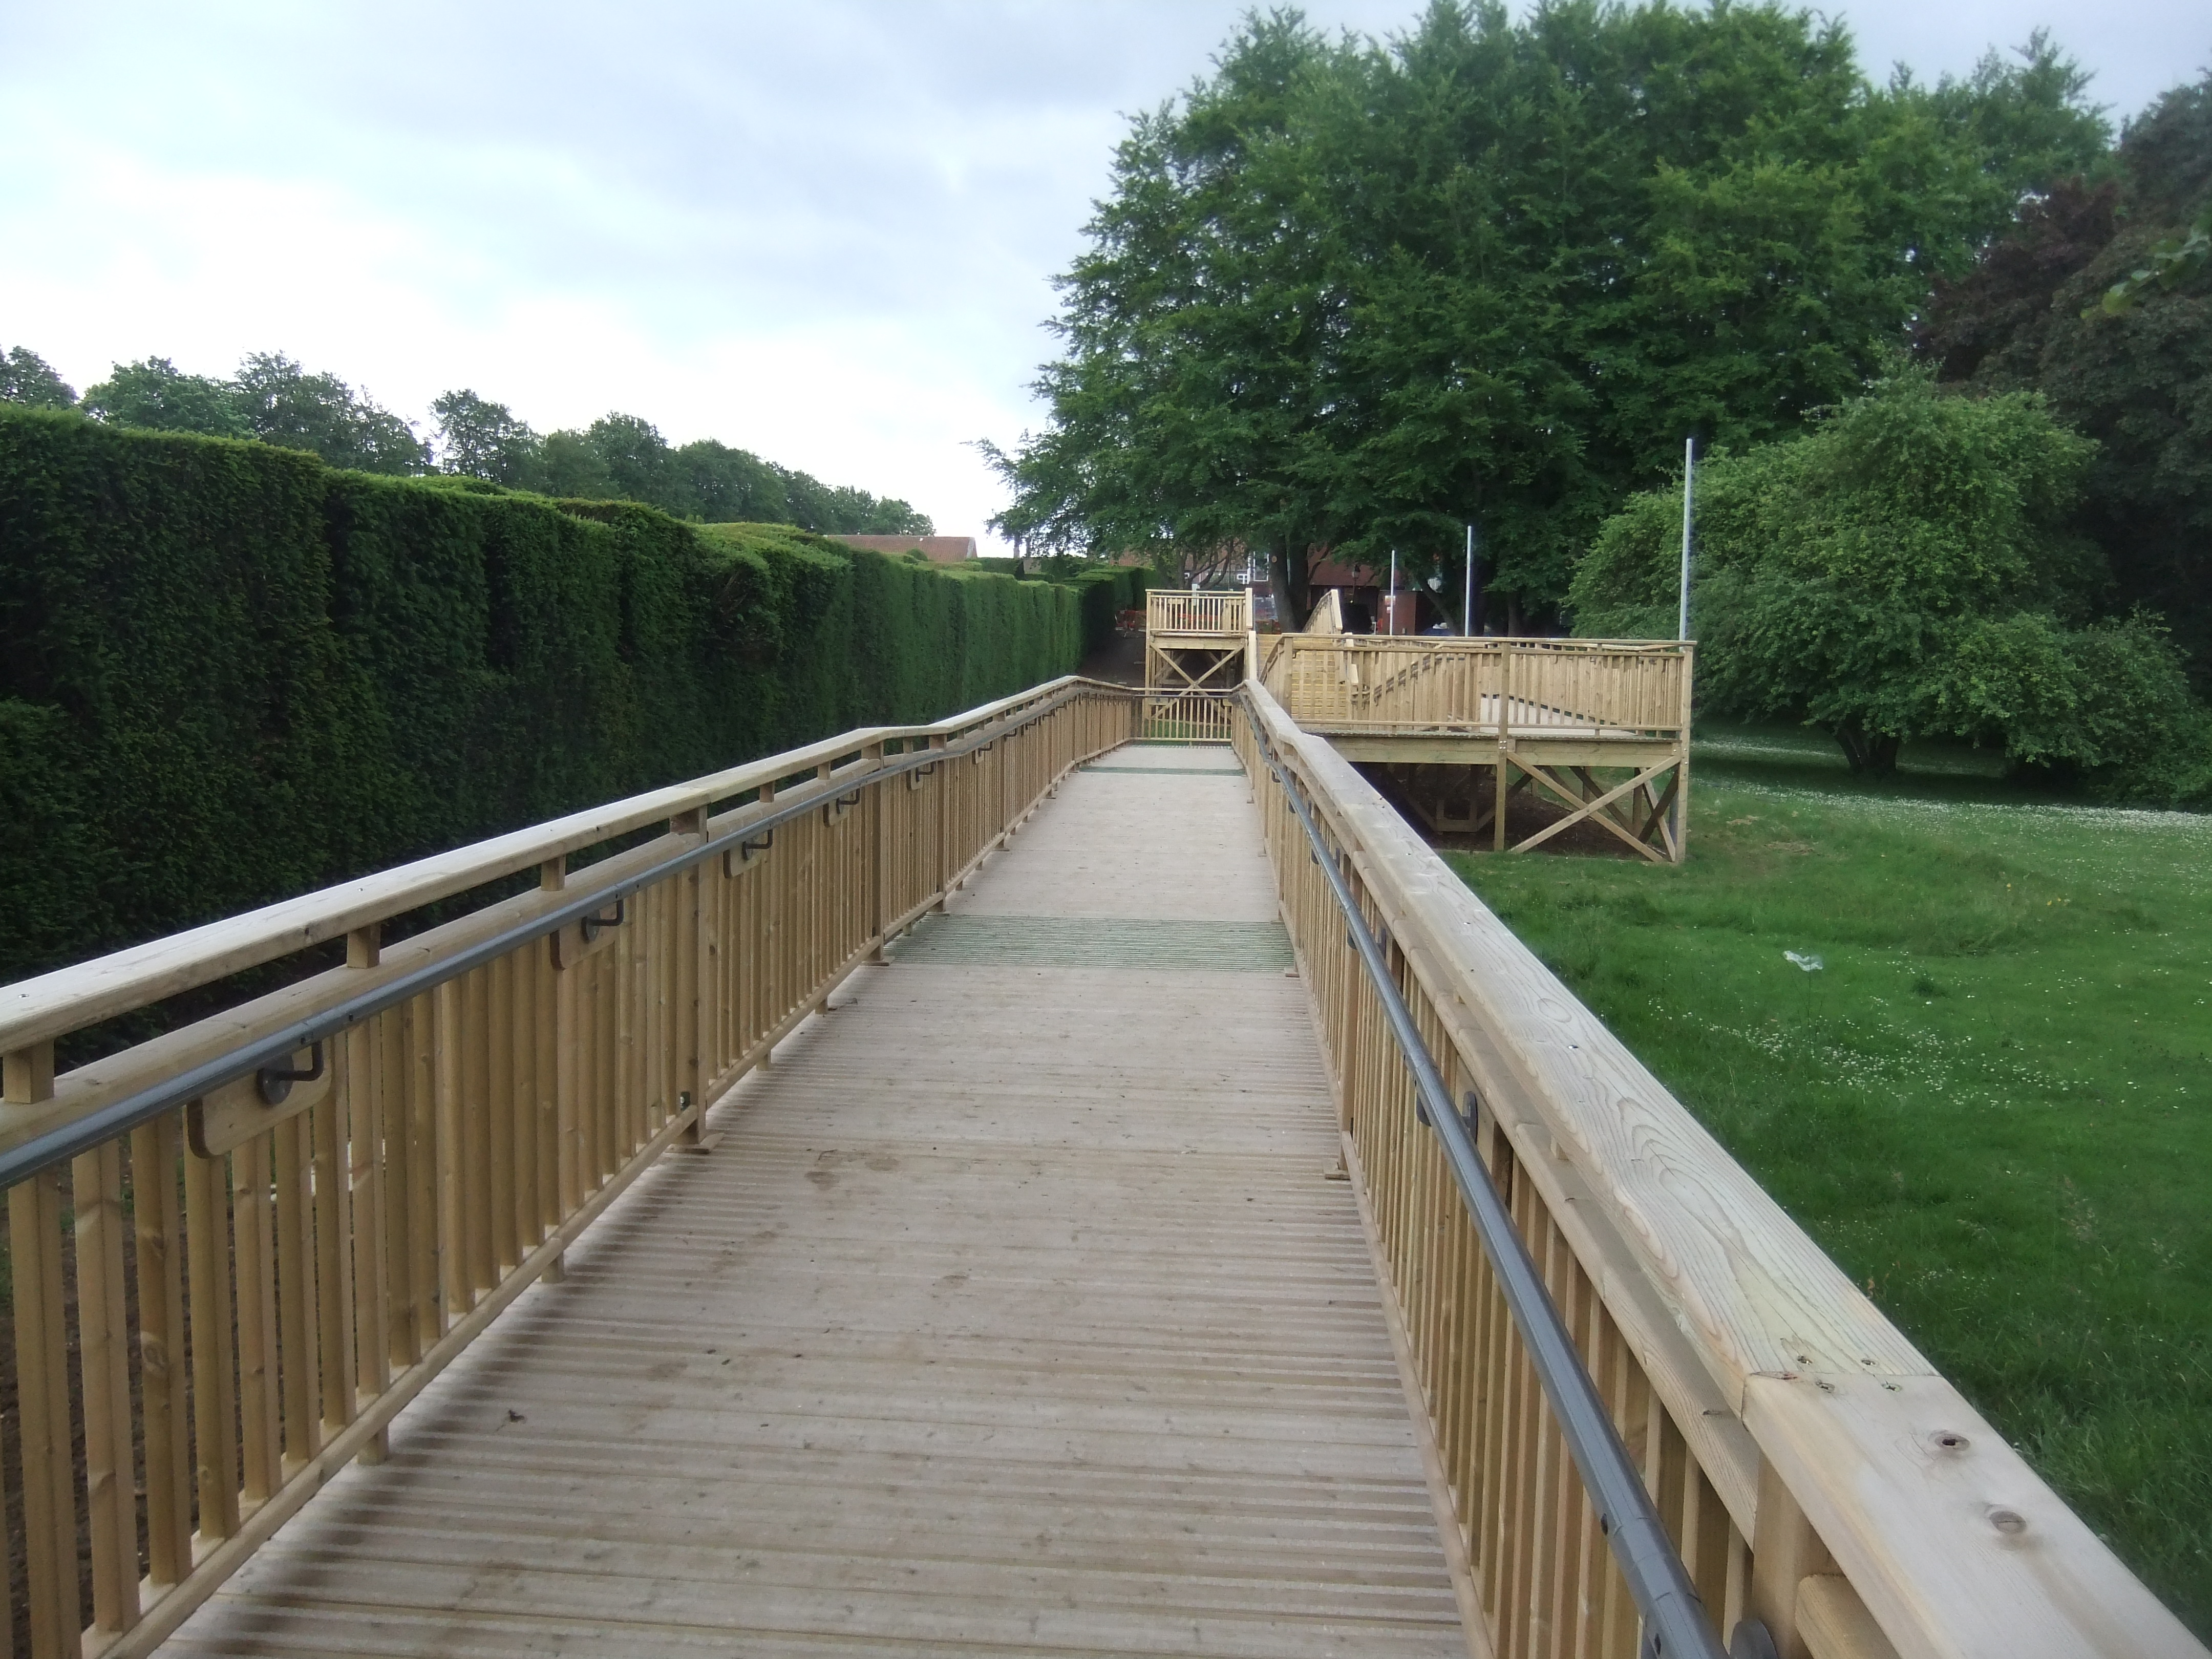 Aggredeck® steps and ramps decking